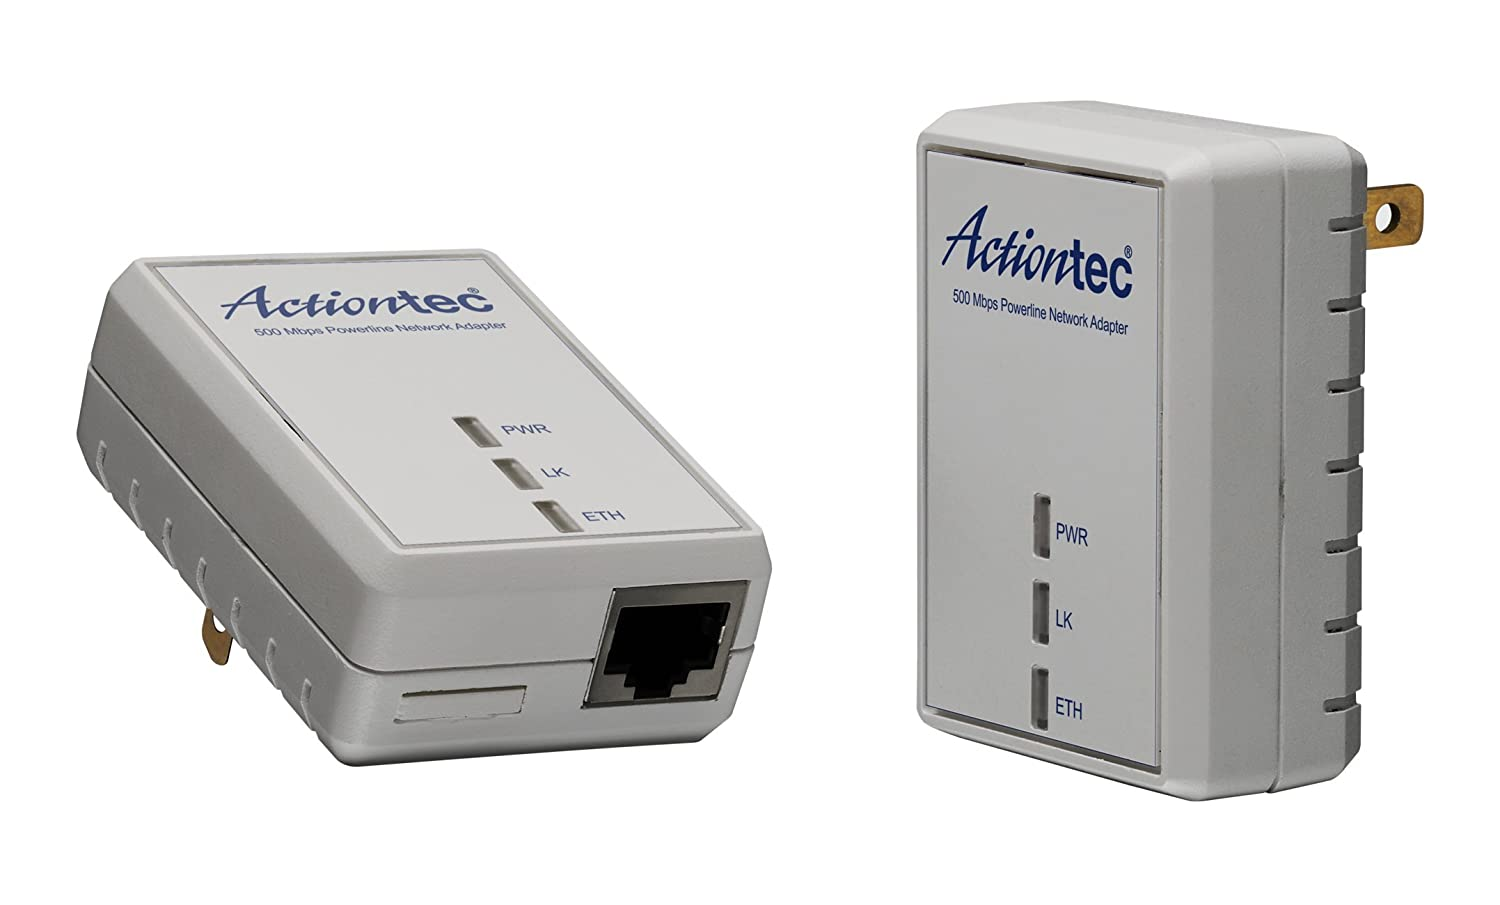 Actiontec Pwr511k01 500 Mbps Homeplug Hd Powerline Wall Broadband Modem Plug Network Adapter Kit 2 Units Computers Accessories